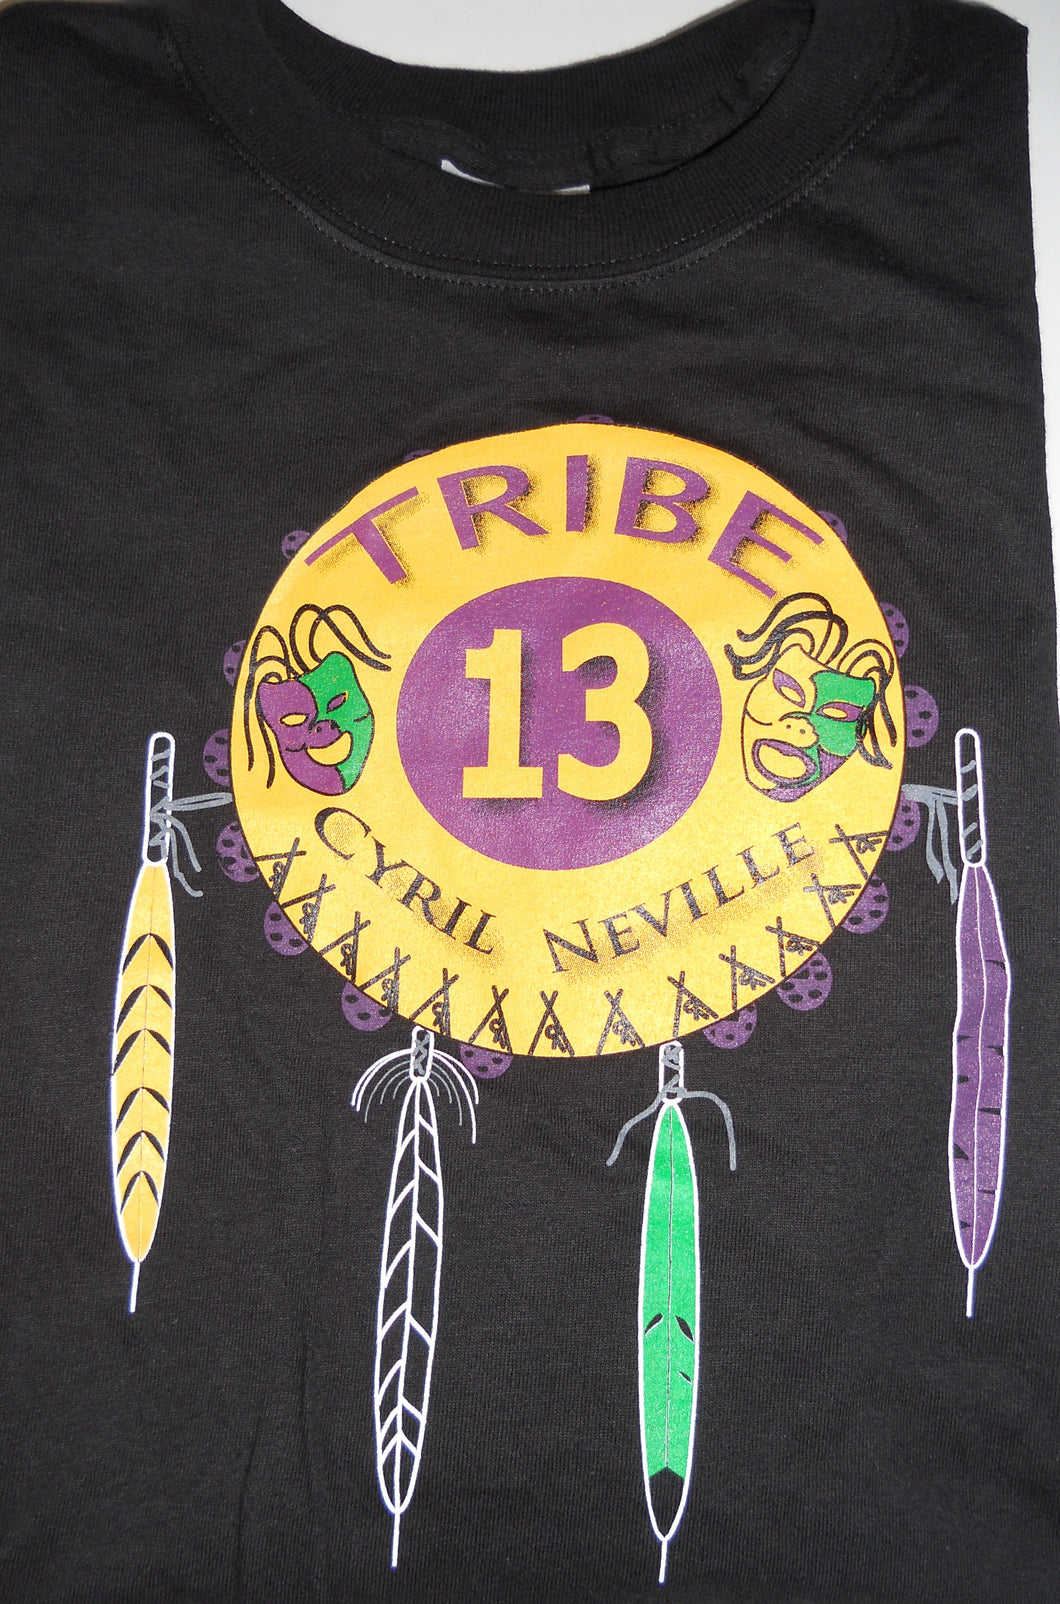 Cyril Neville Tribe 13, Black, Medium - T-shirt